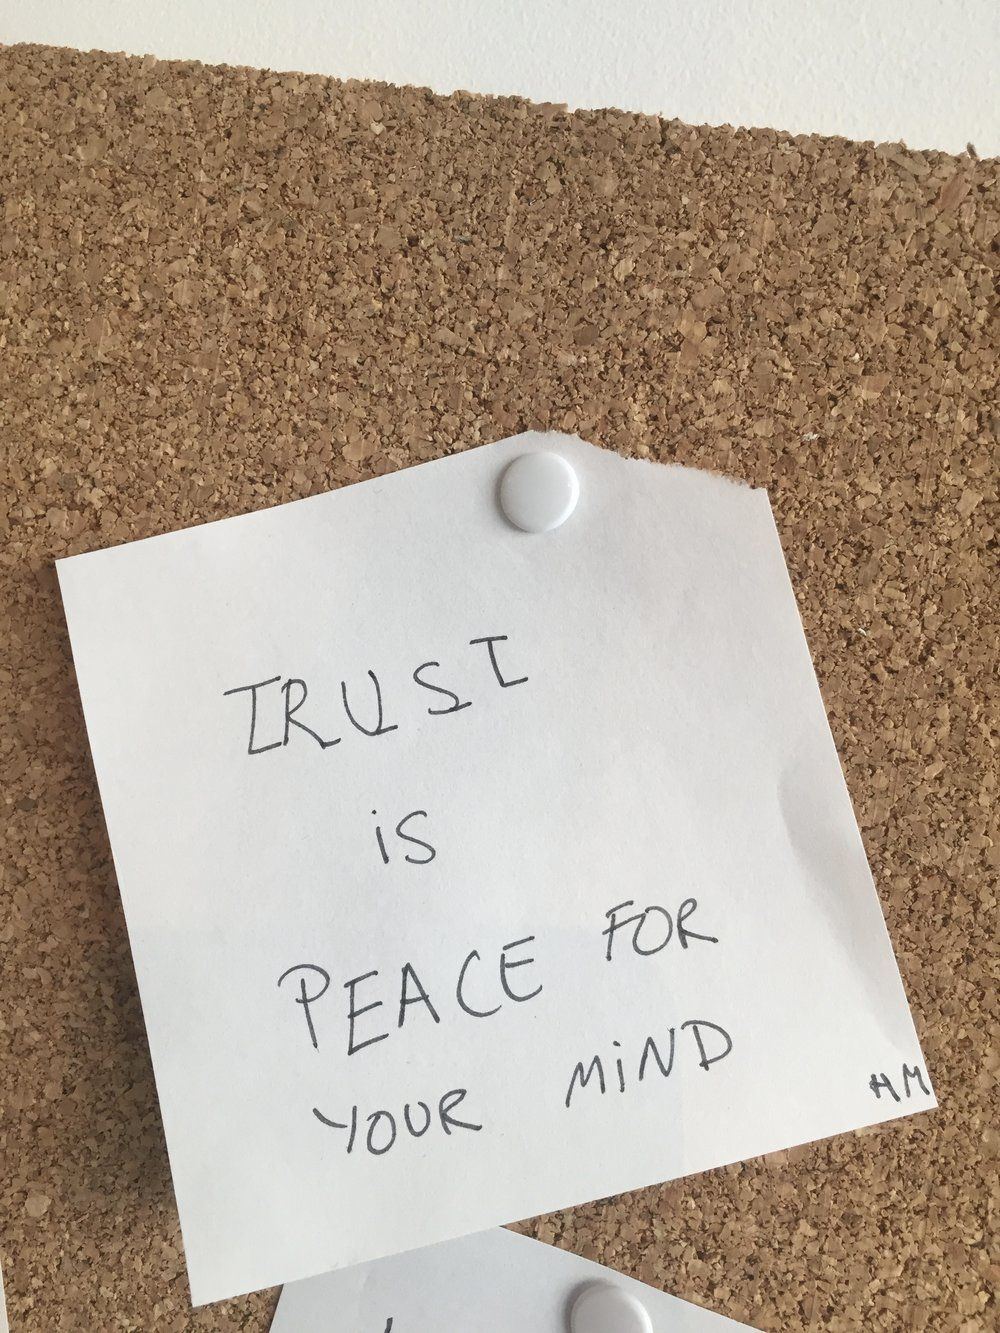 Description: Trust is Peace Post-It